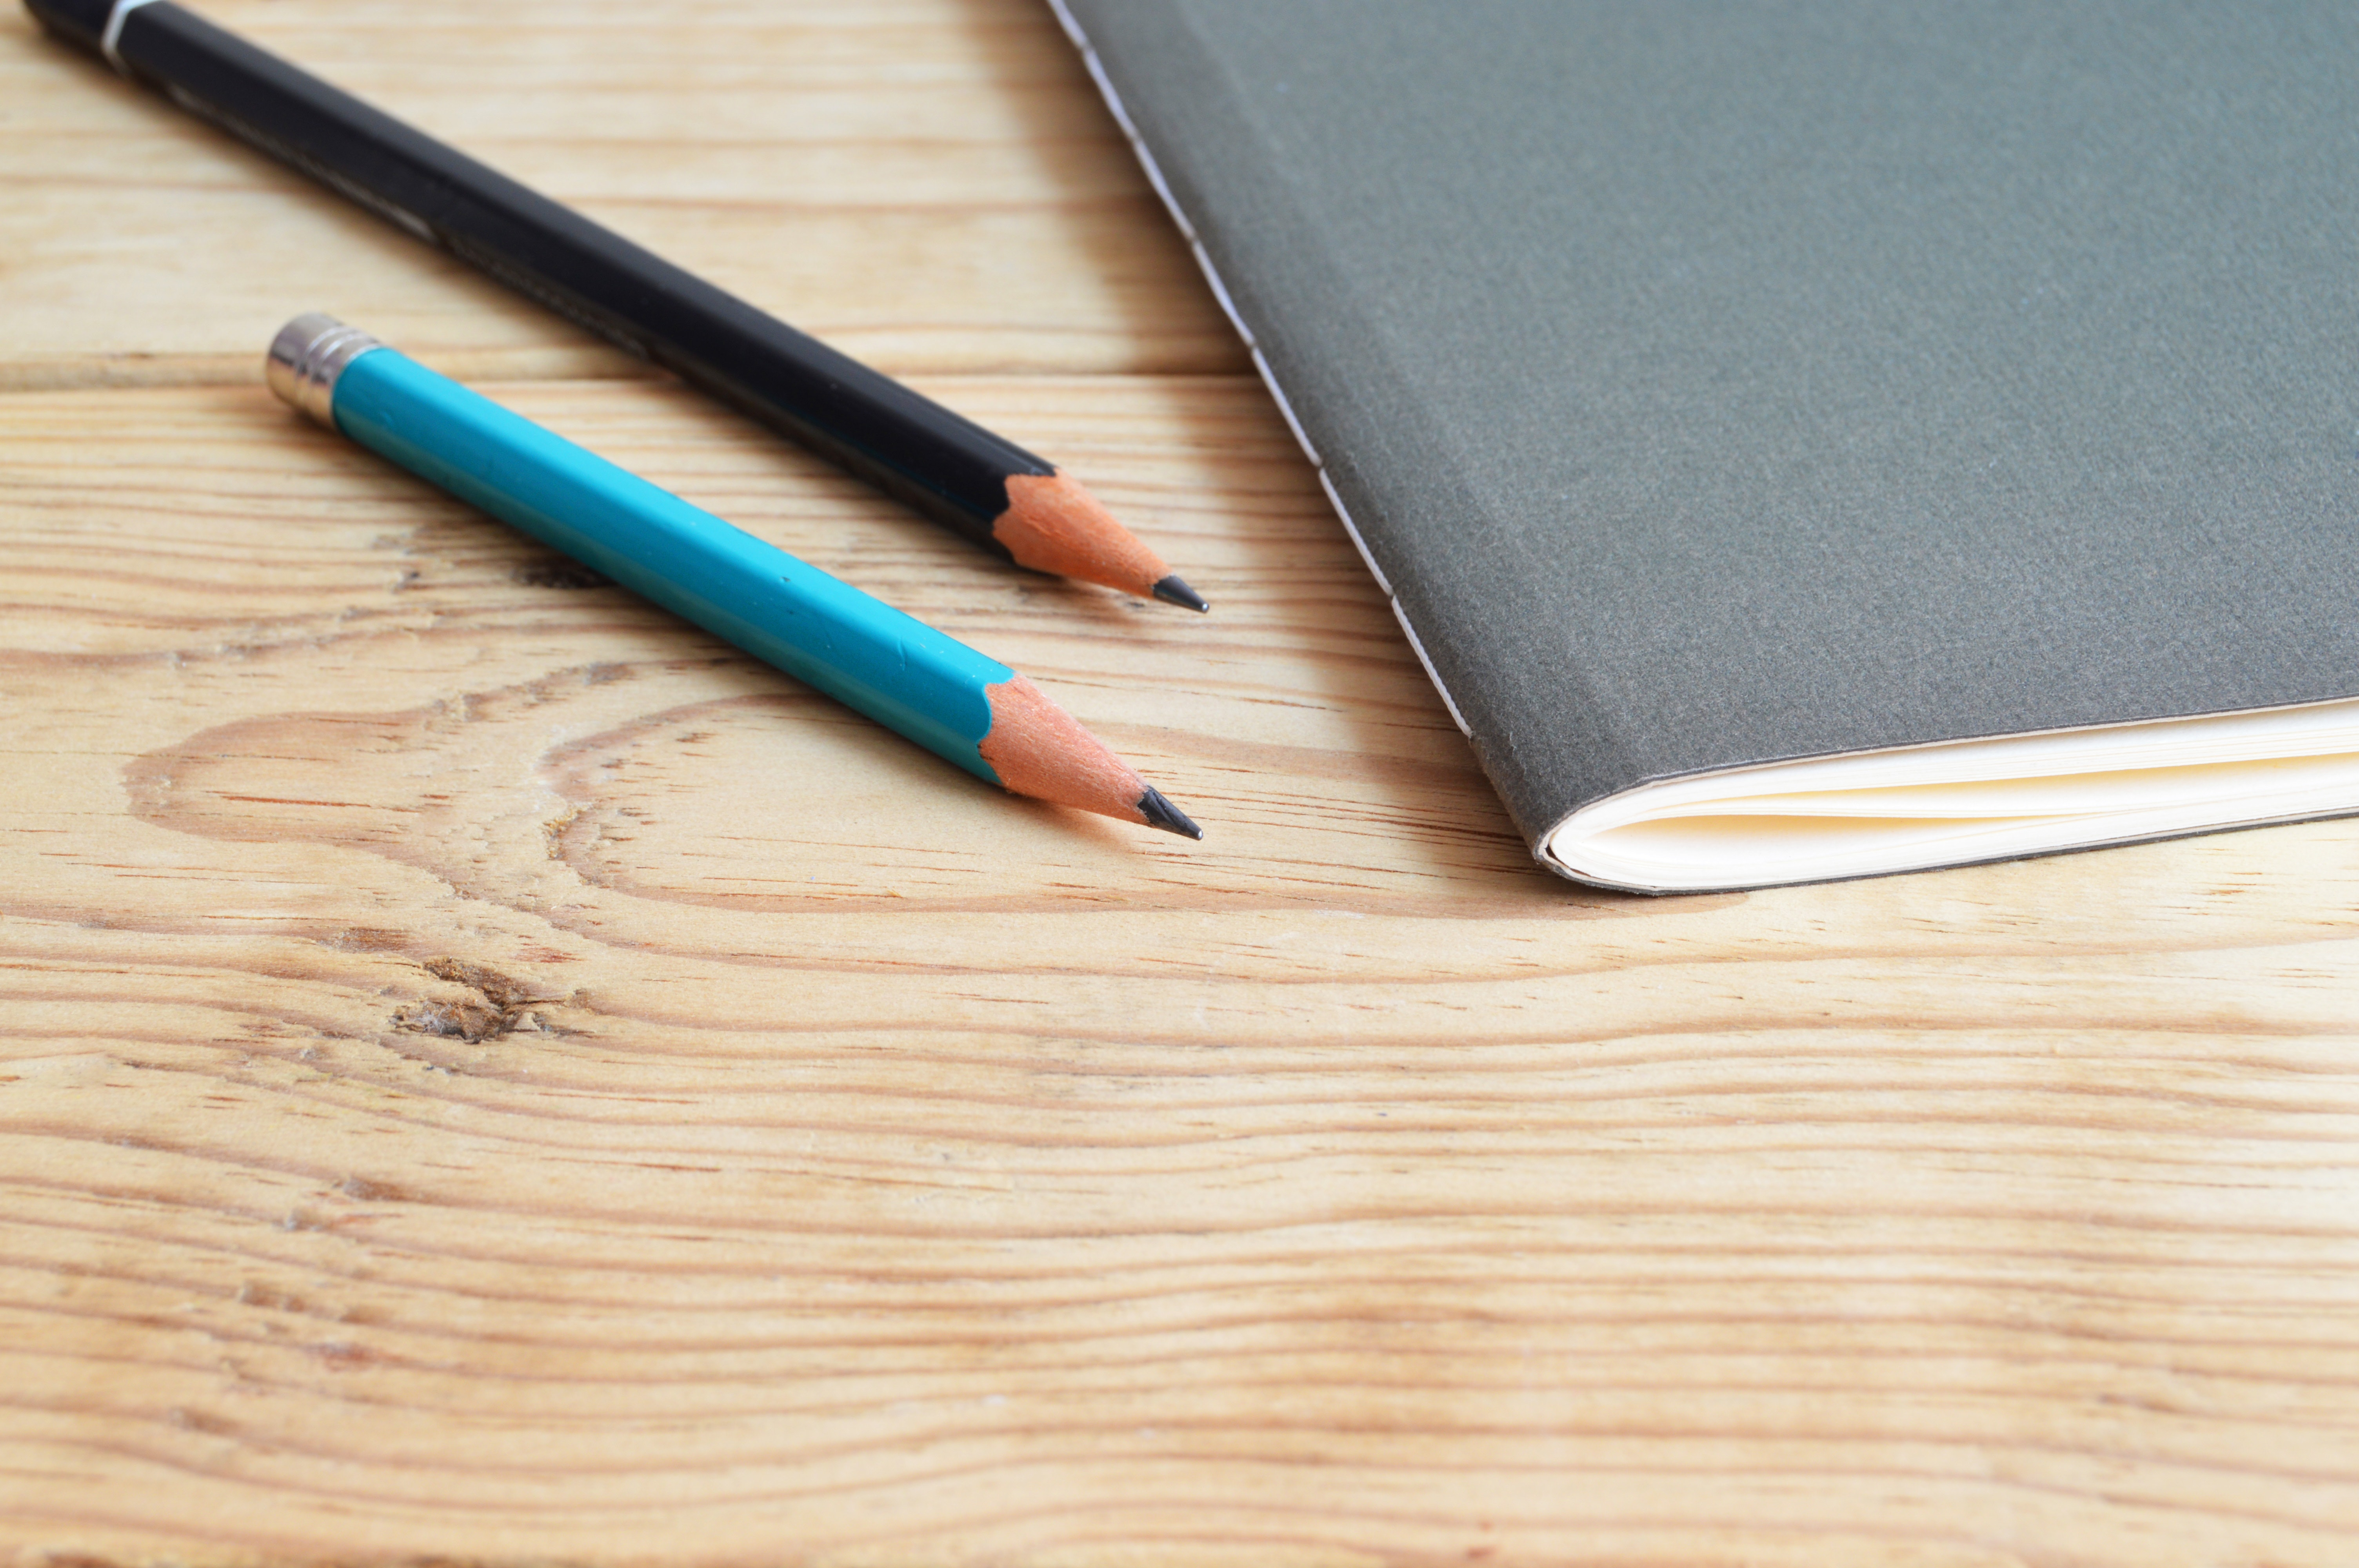 Blue and black pencil pictured next to a grey notebook